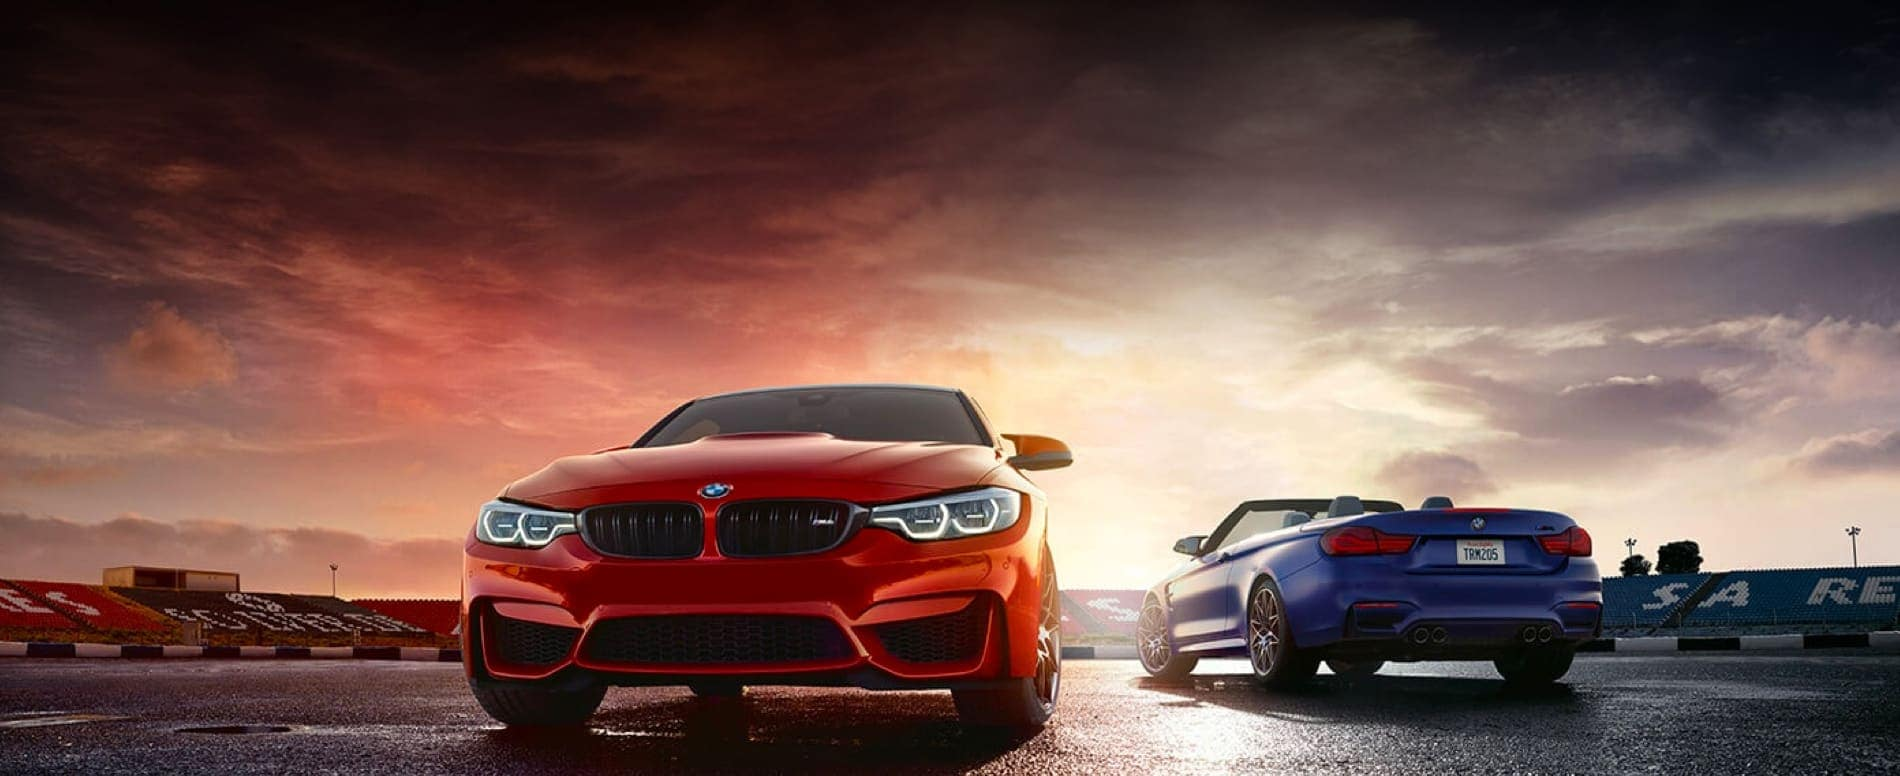 Two BMW vehicles against a backdrop of a sunset